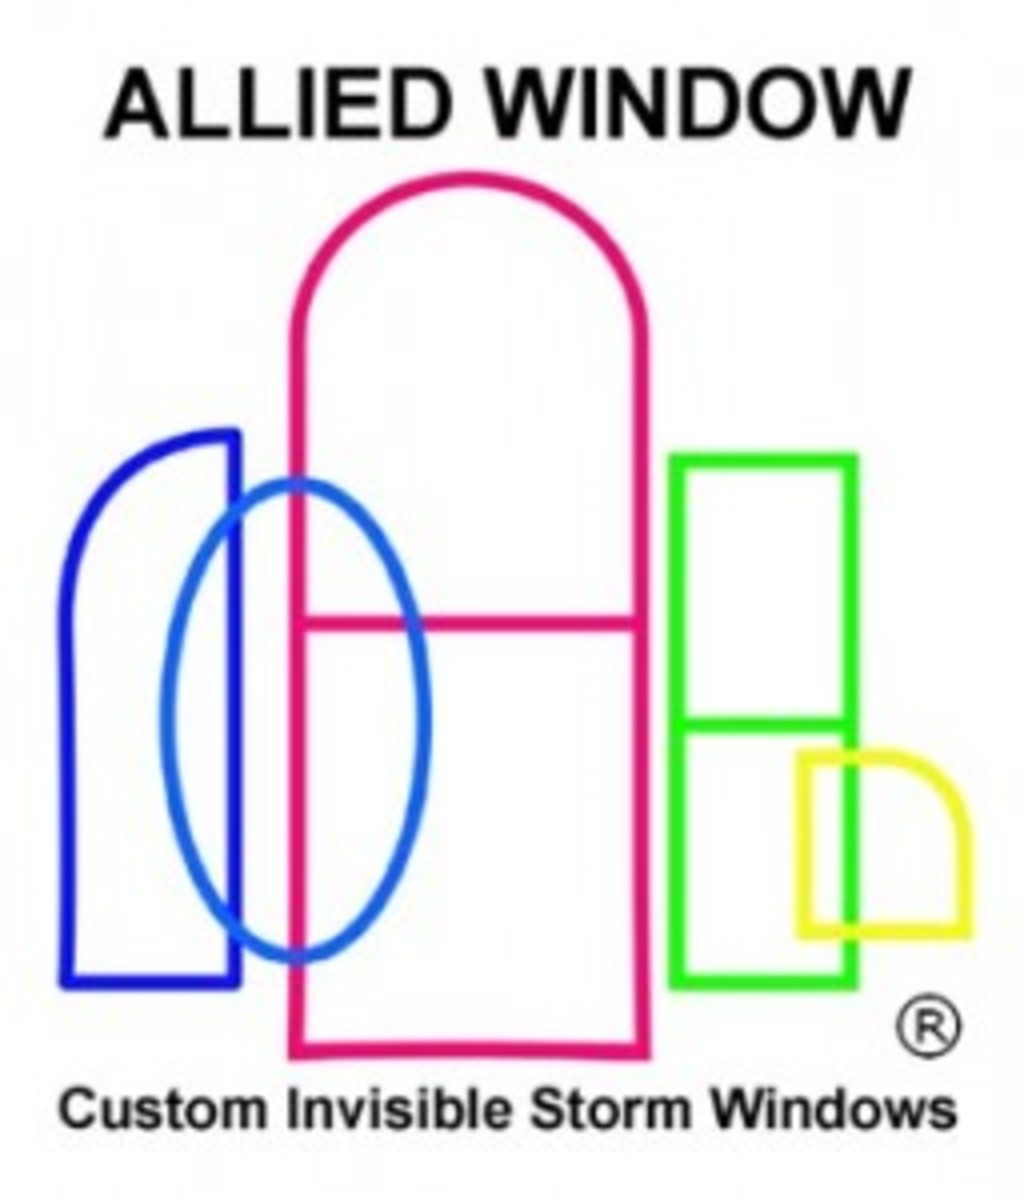 Allied Window